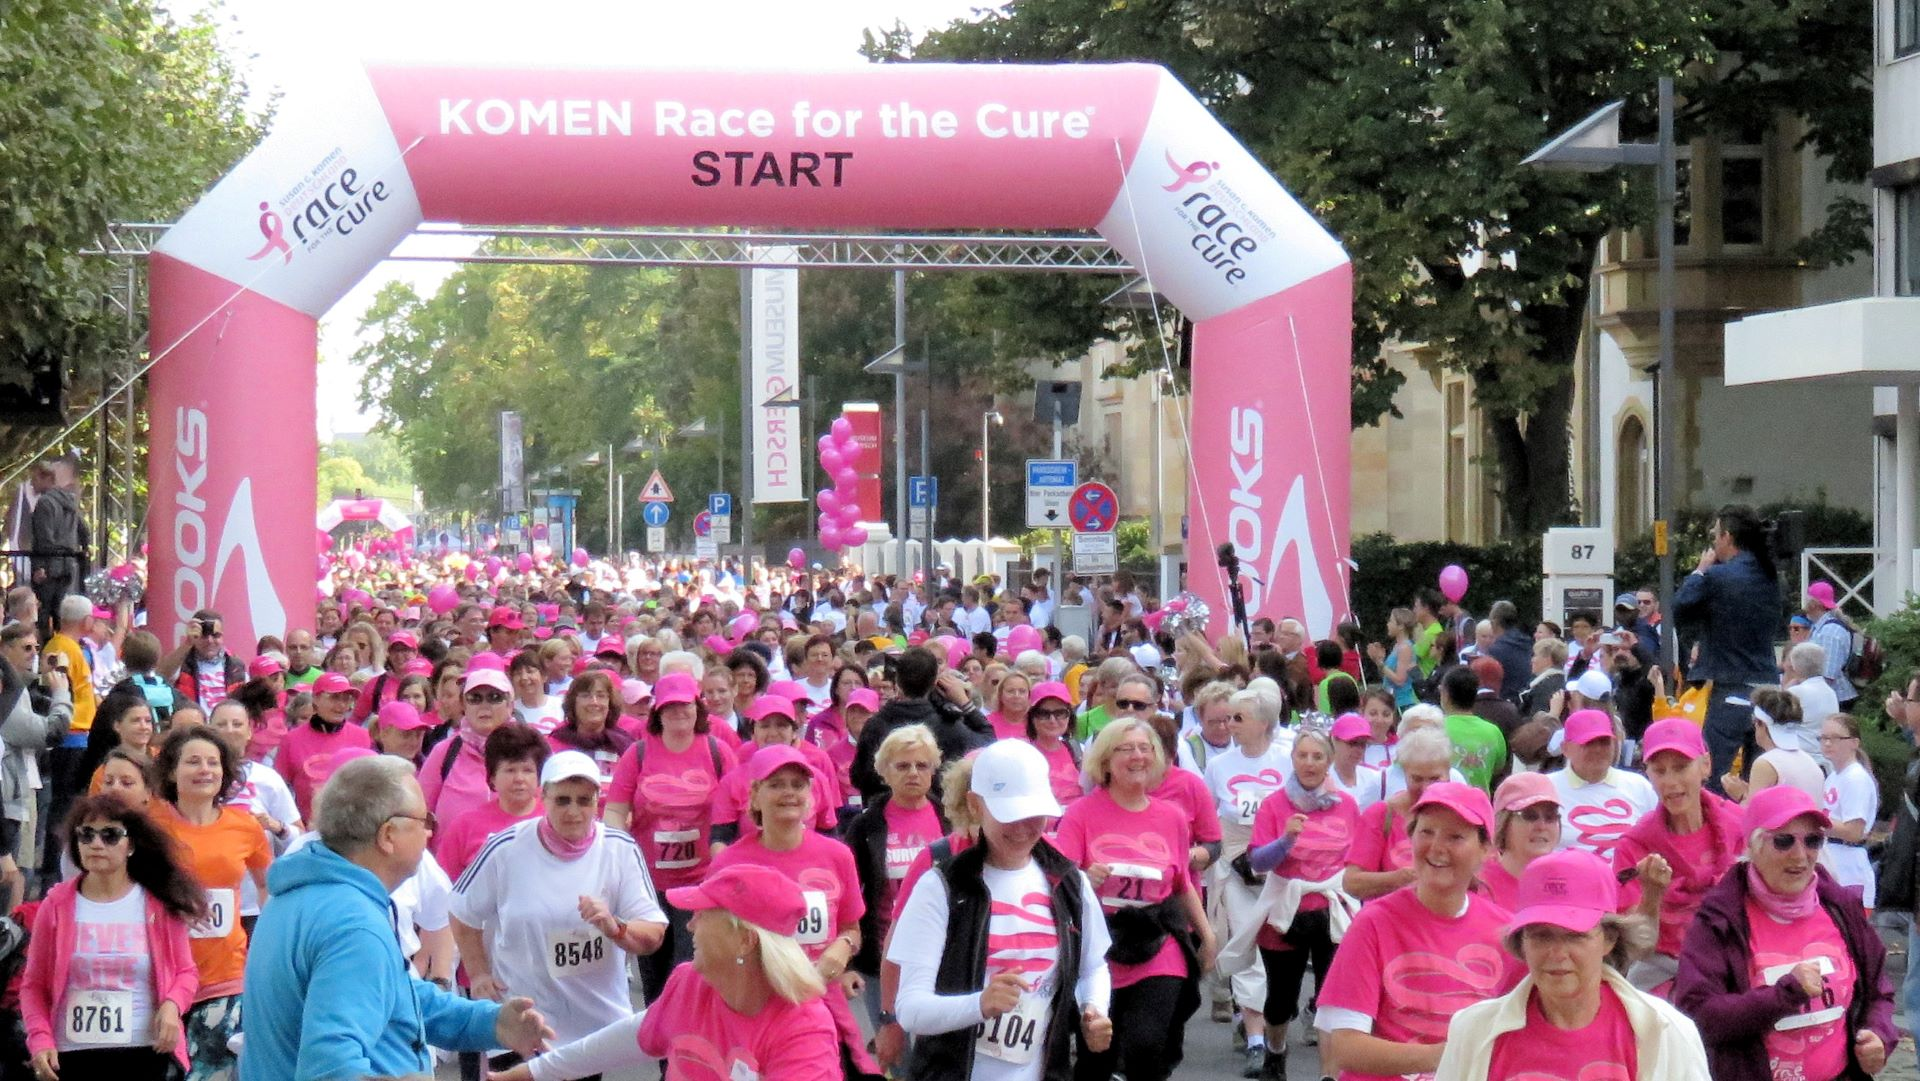 Race-for-the-cure.jpg